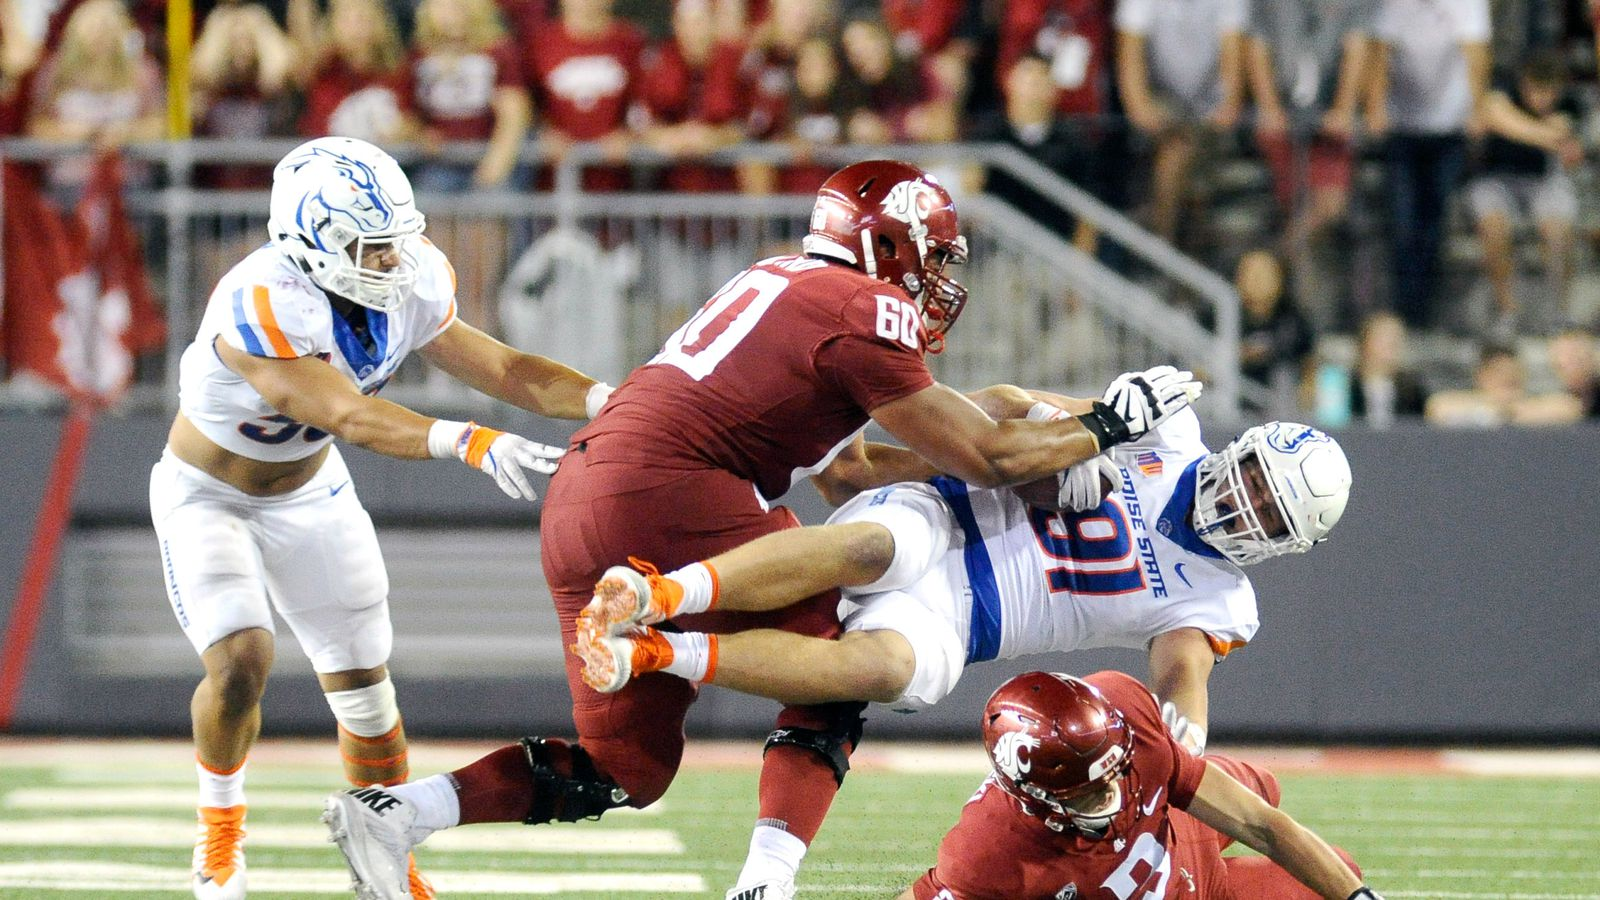 Andre Dillard scouting report: personal history, background